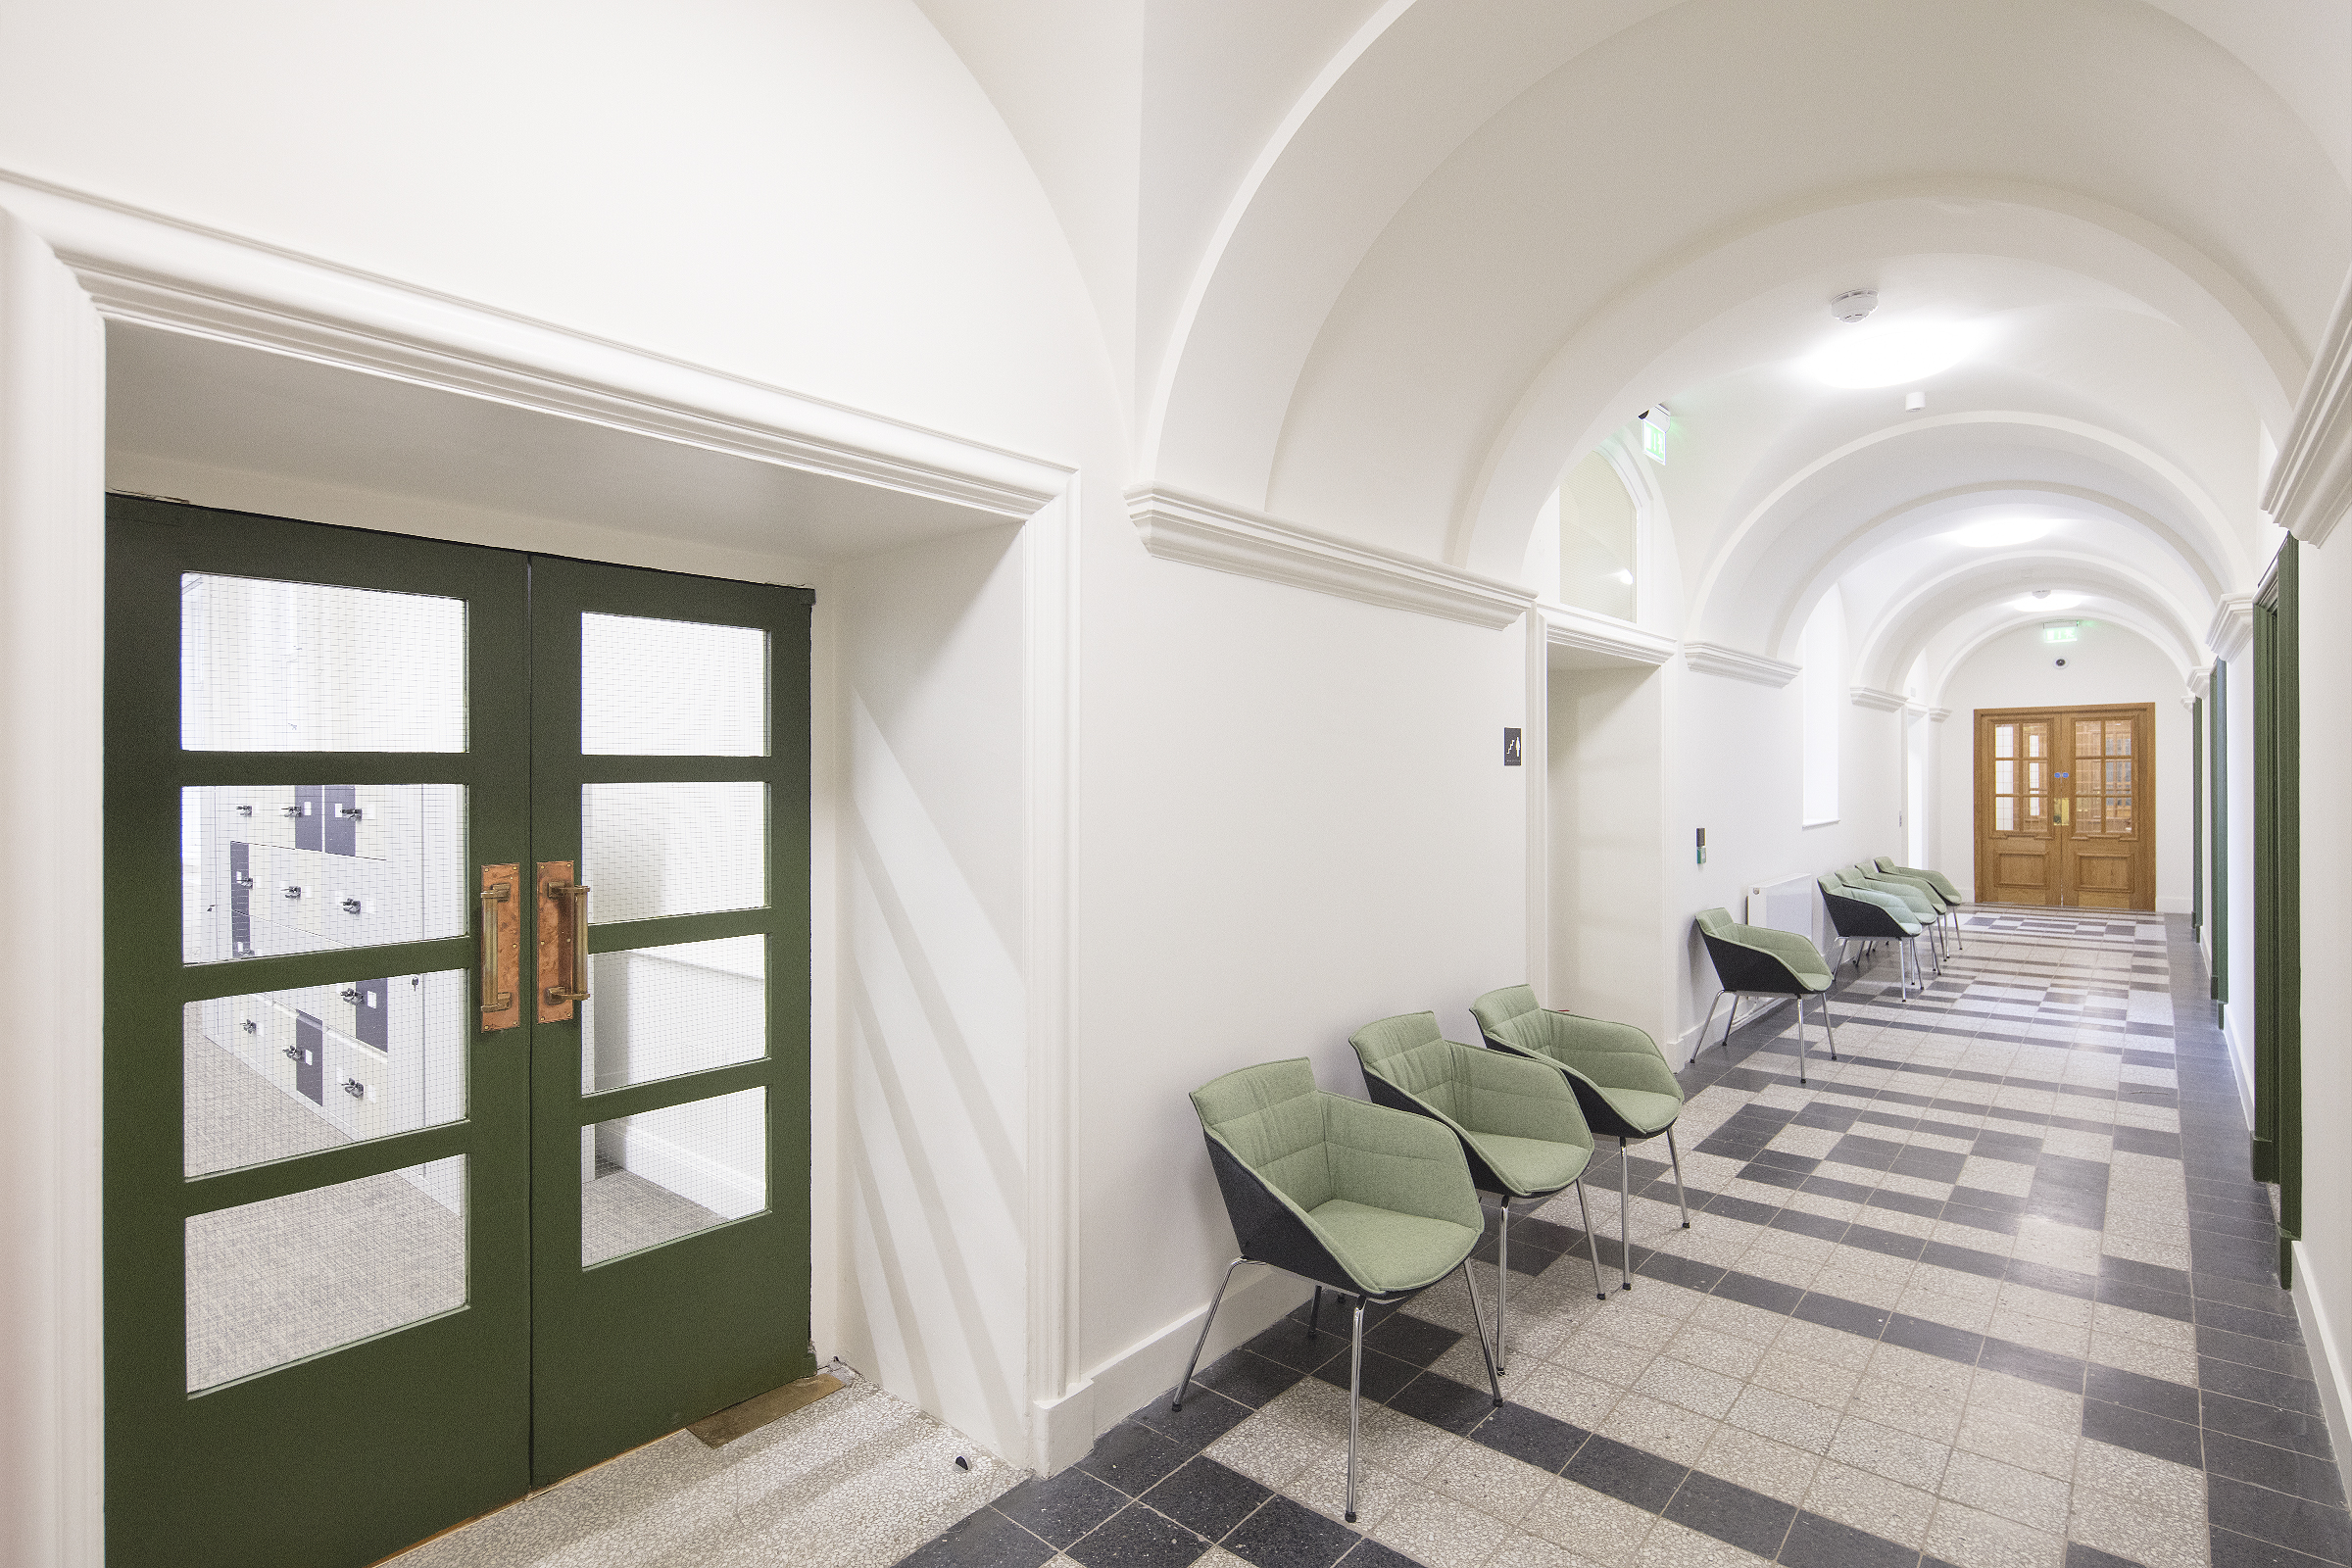 lambeth town hall hallways